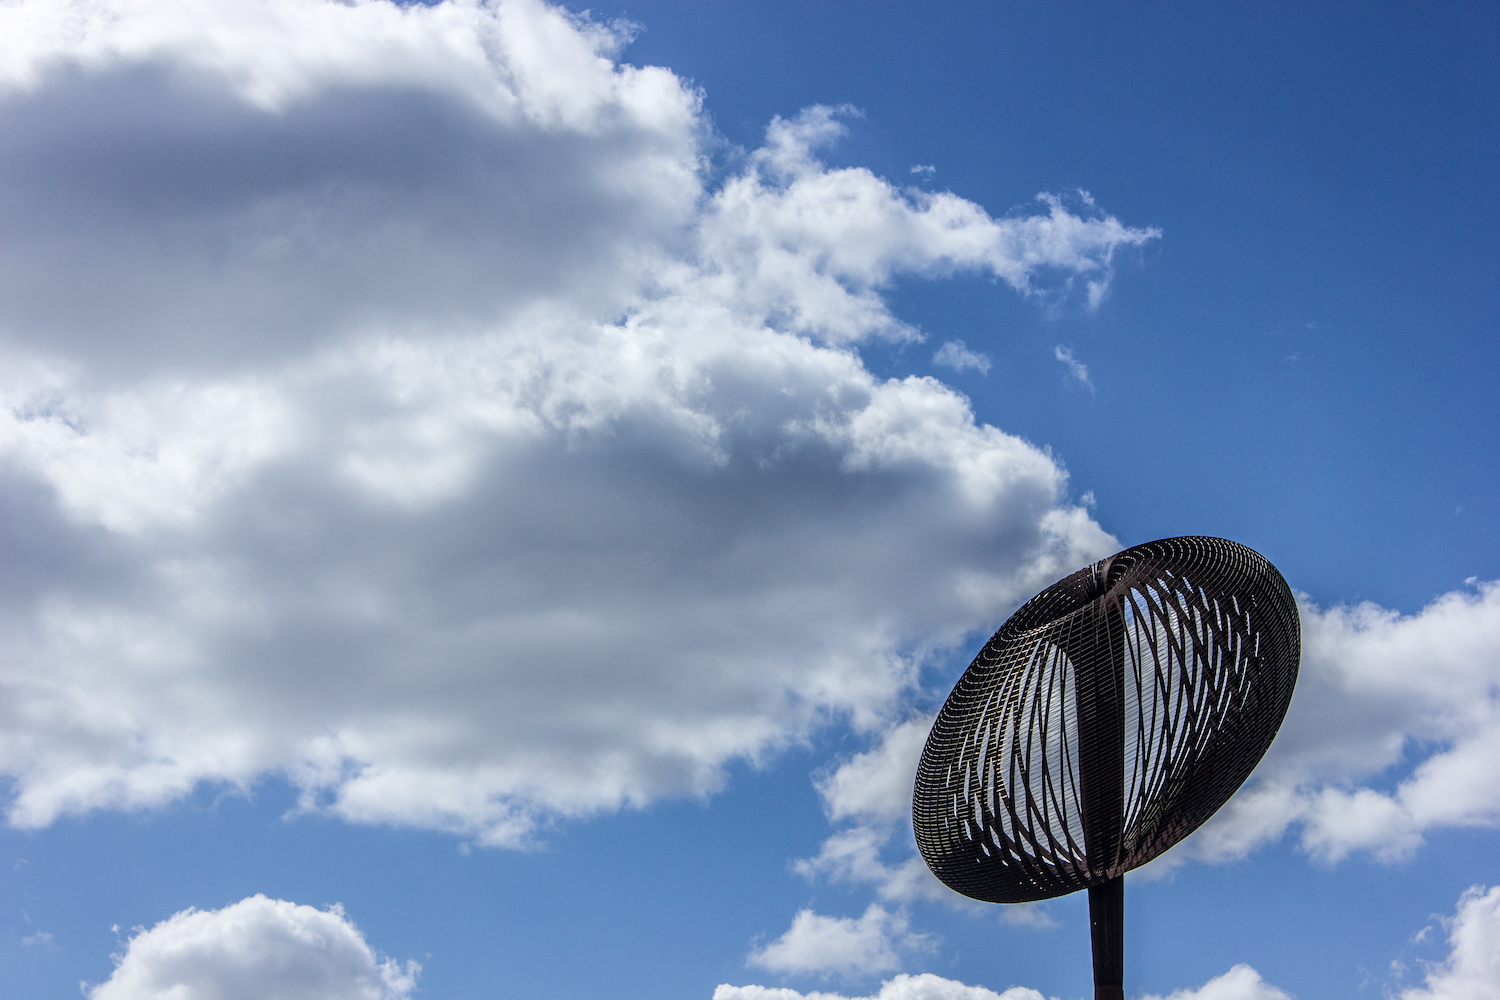 Professional Photography Egg Whisk Sculpture With Blue Sky And Clouds In Gants Hill London